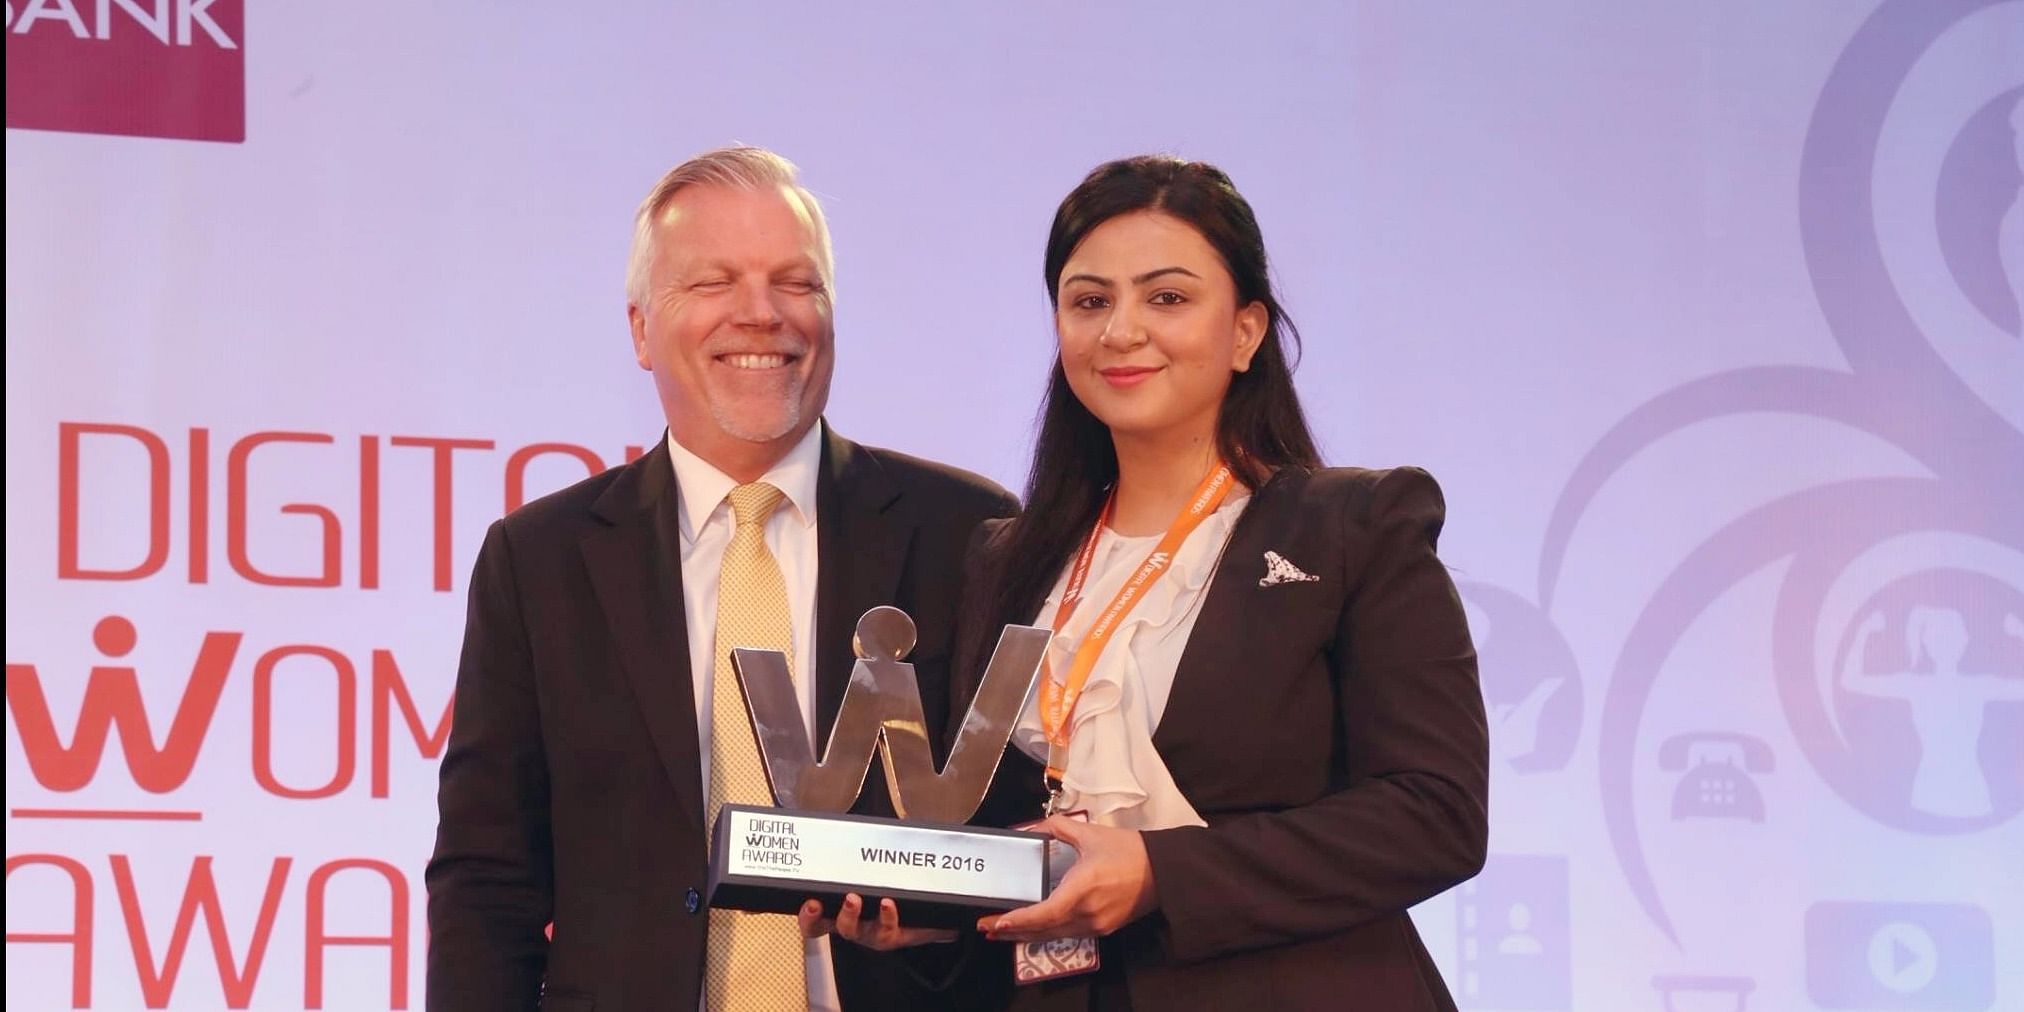 Mr. Wolfgang, Lufthansa India presenting an Award to Ms. Sakshi Talwar for Creative Disruptor, Rugs and Beyond